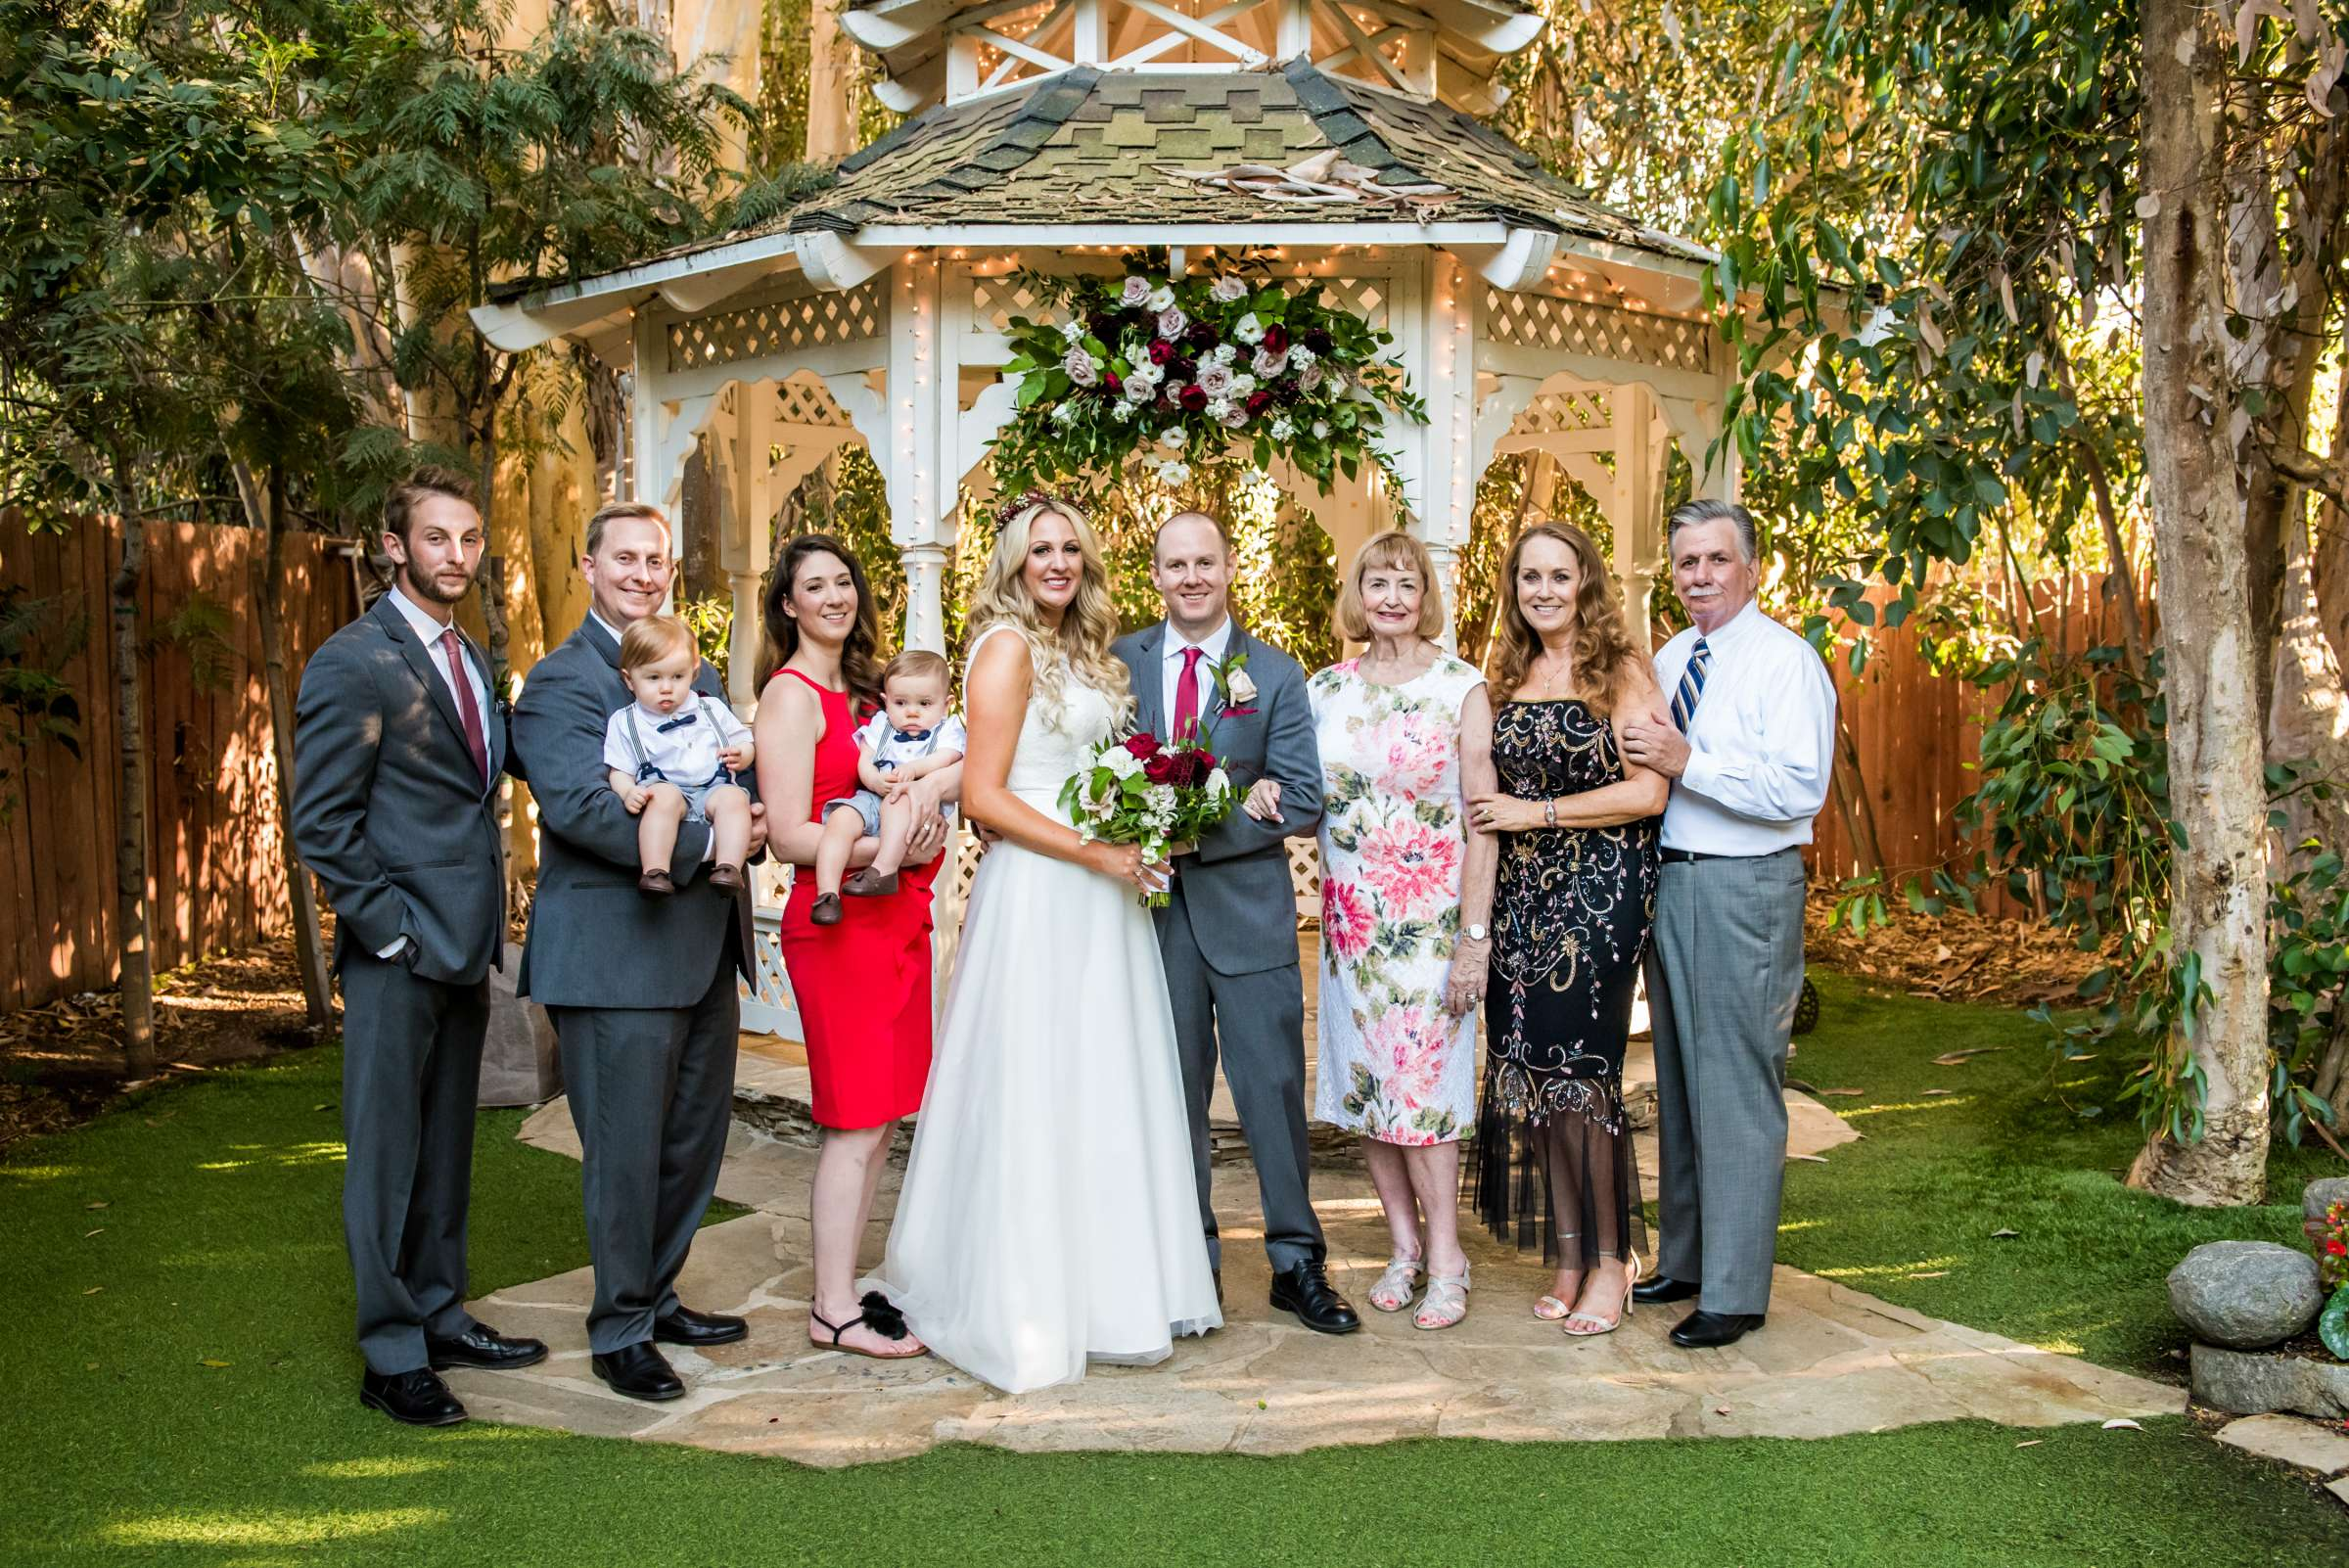 Twin Oaks House & Gardens Wedding Estate Wedding, Brittany and Sean Wedding Photo #100 by True Photography